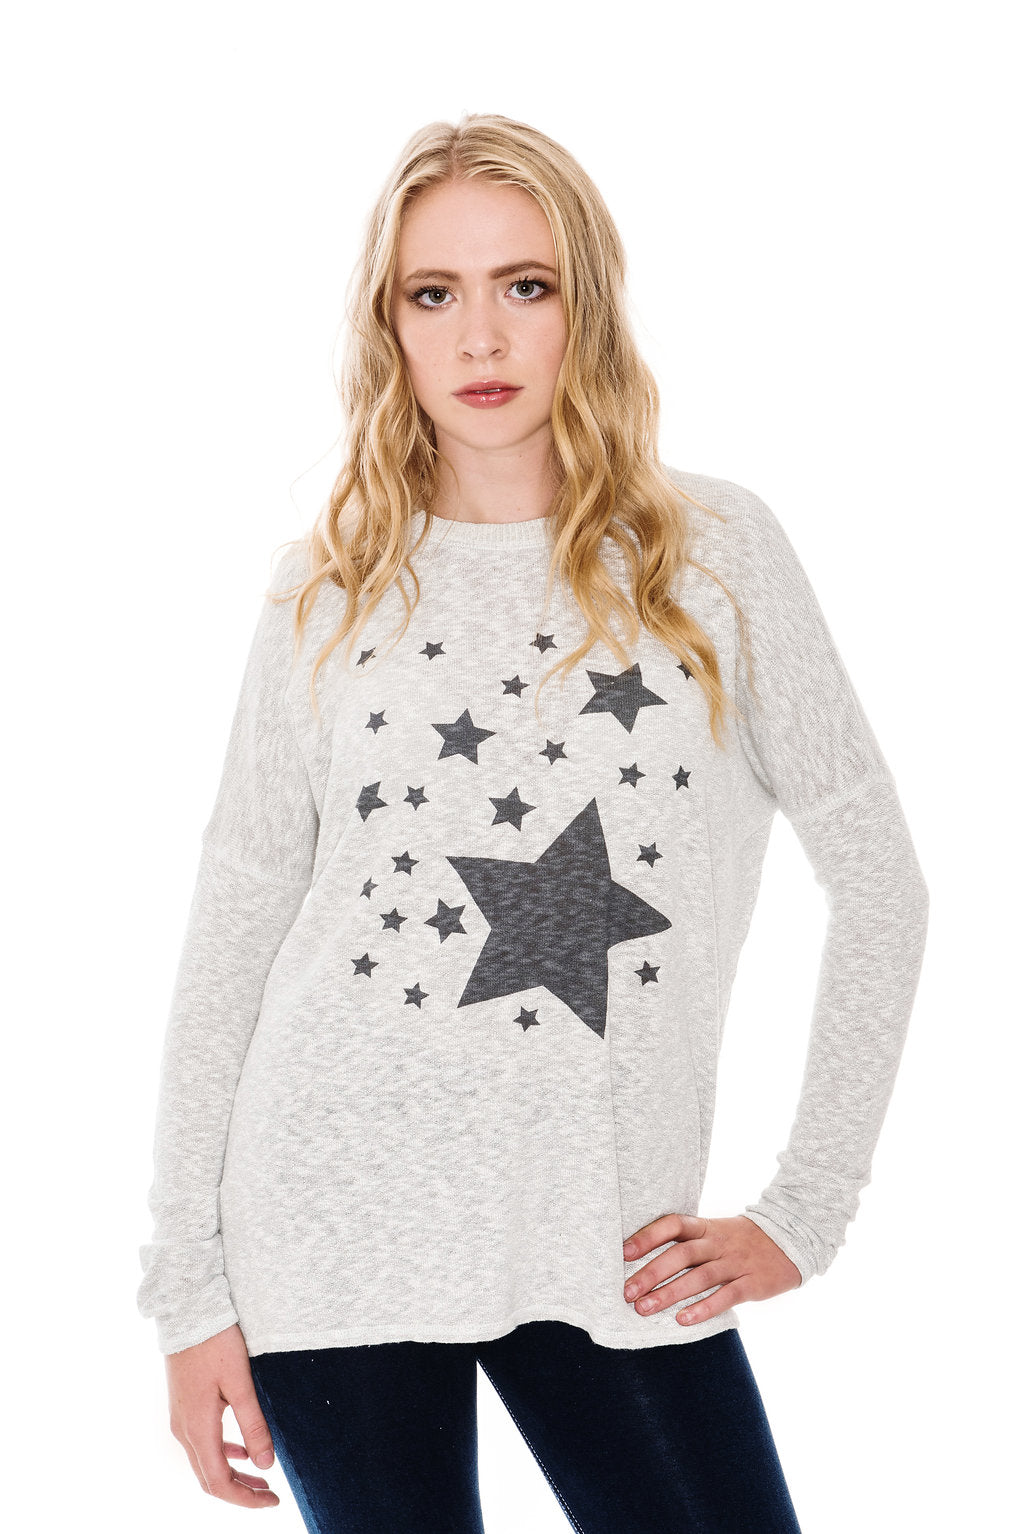 A POSTCARD FROM BRIGHTON STARRY SLUB KNIT TOP - COCONUT